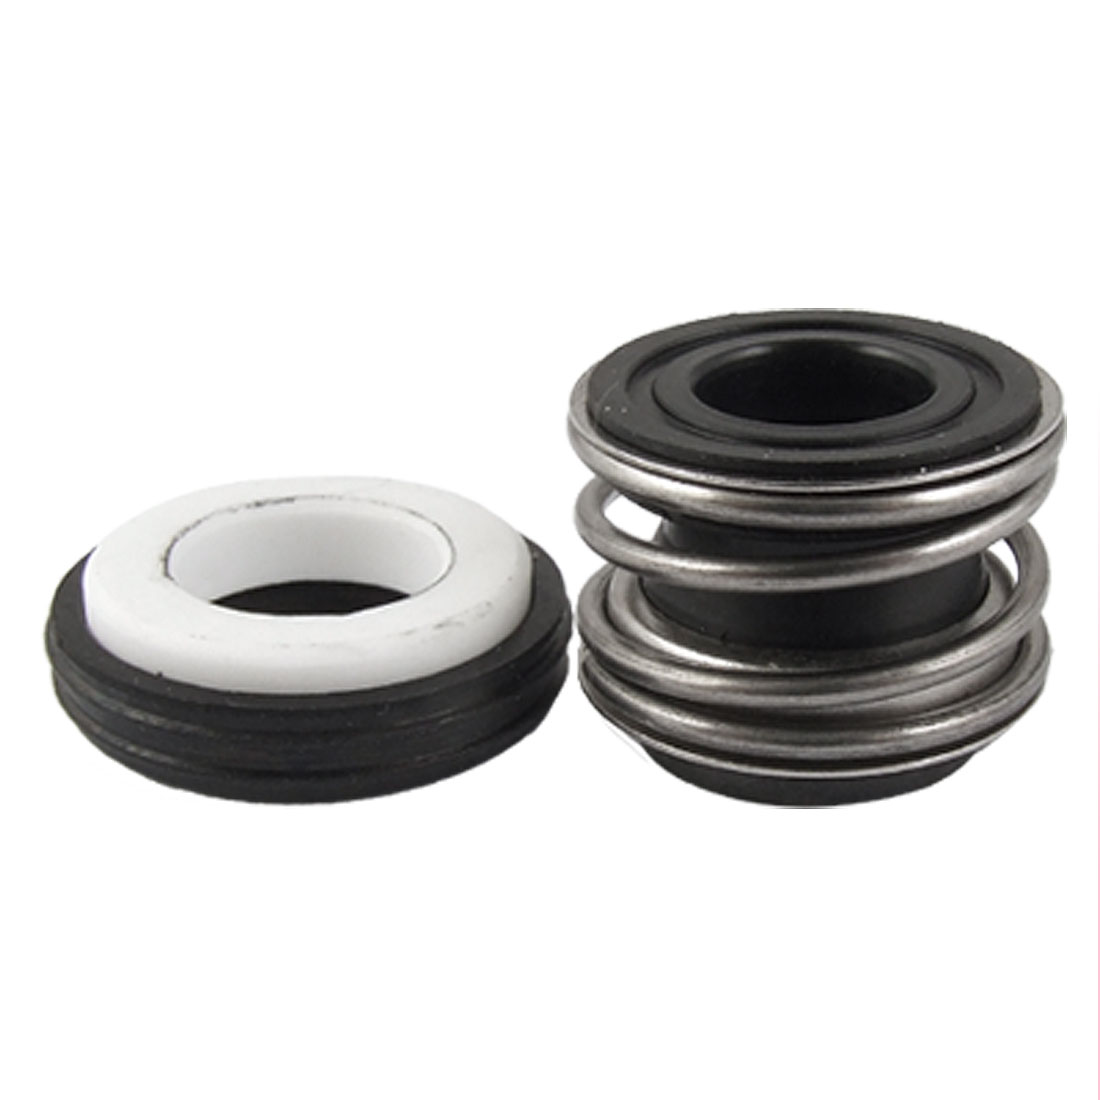 MB1-12 12mm ID Bottom Bellows Spring Mechanical Seal